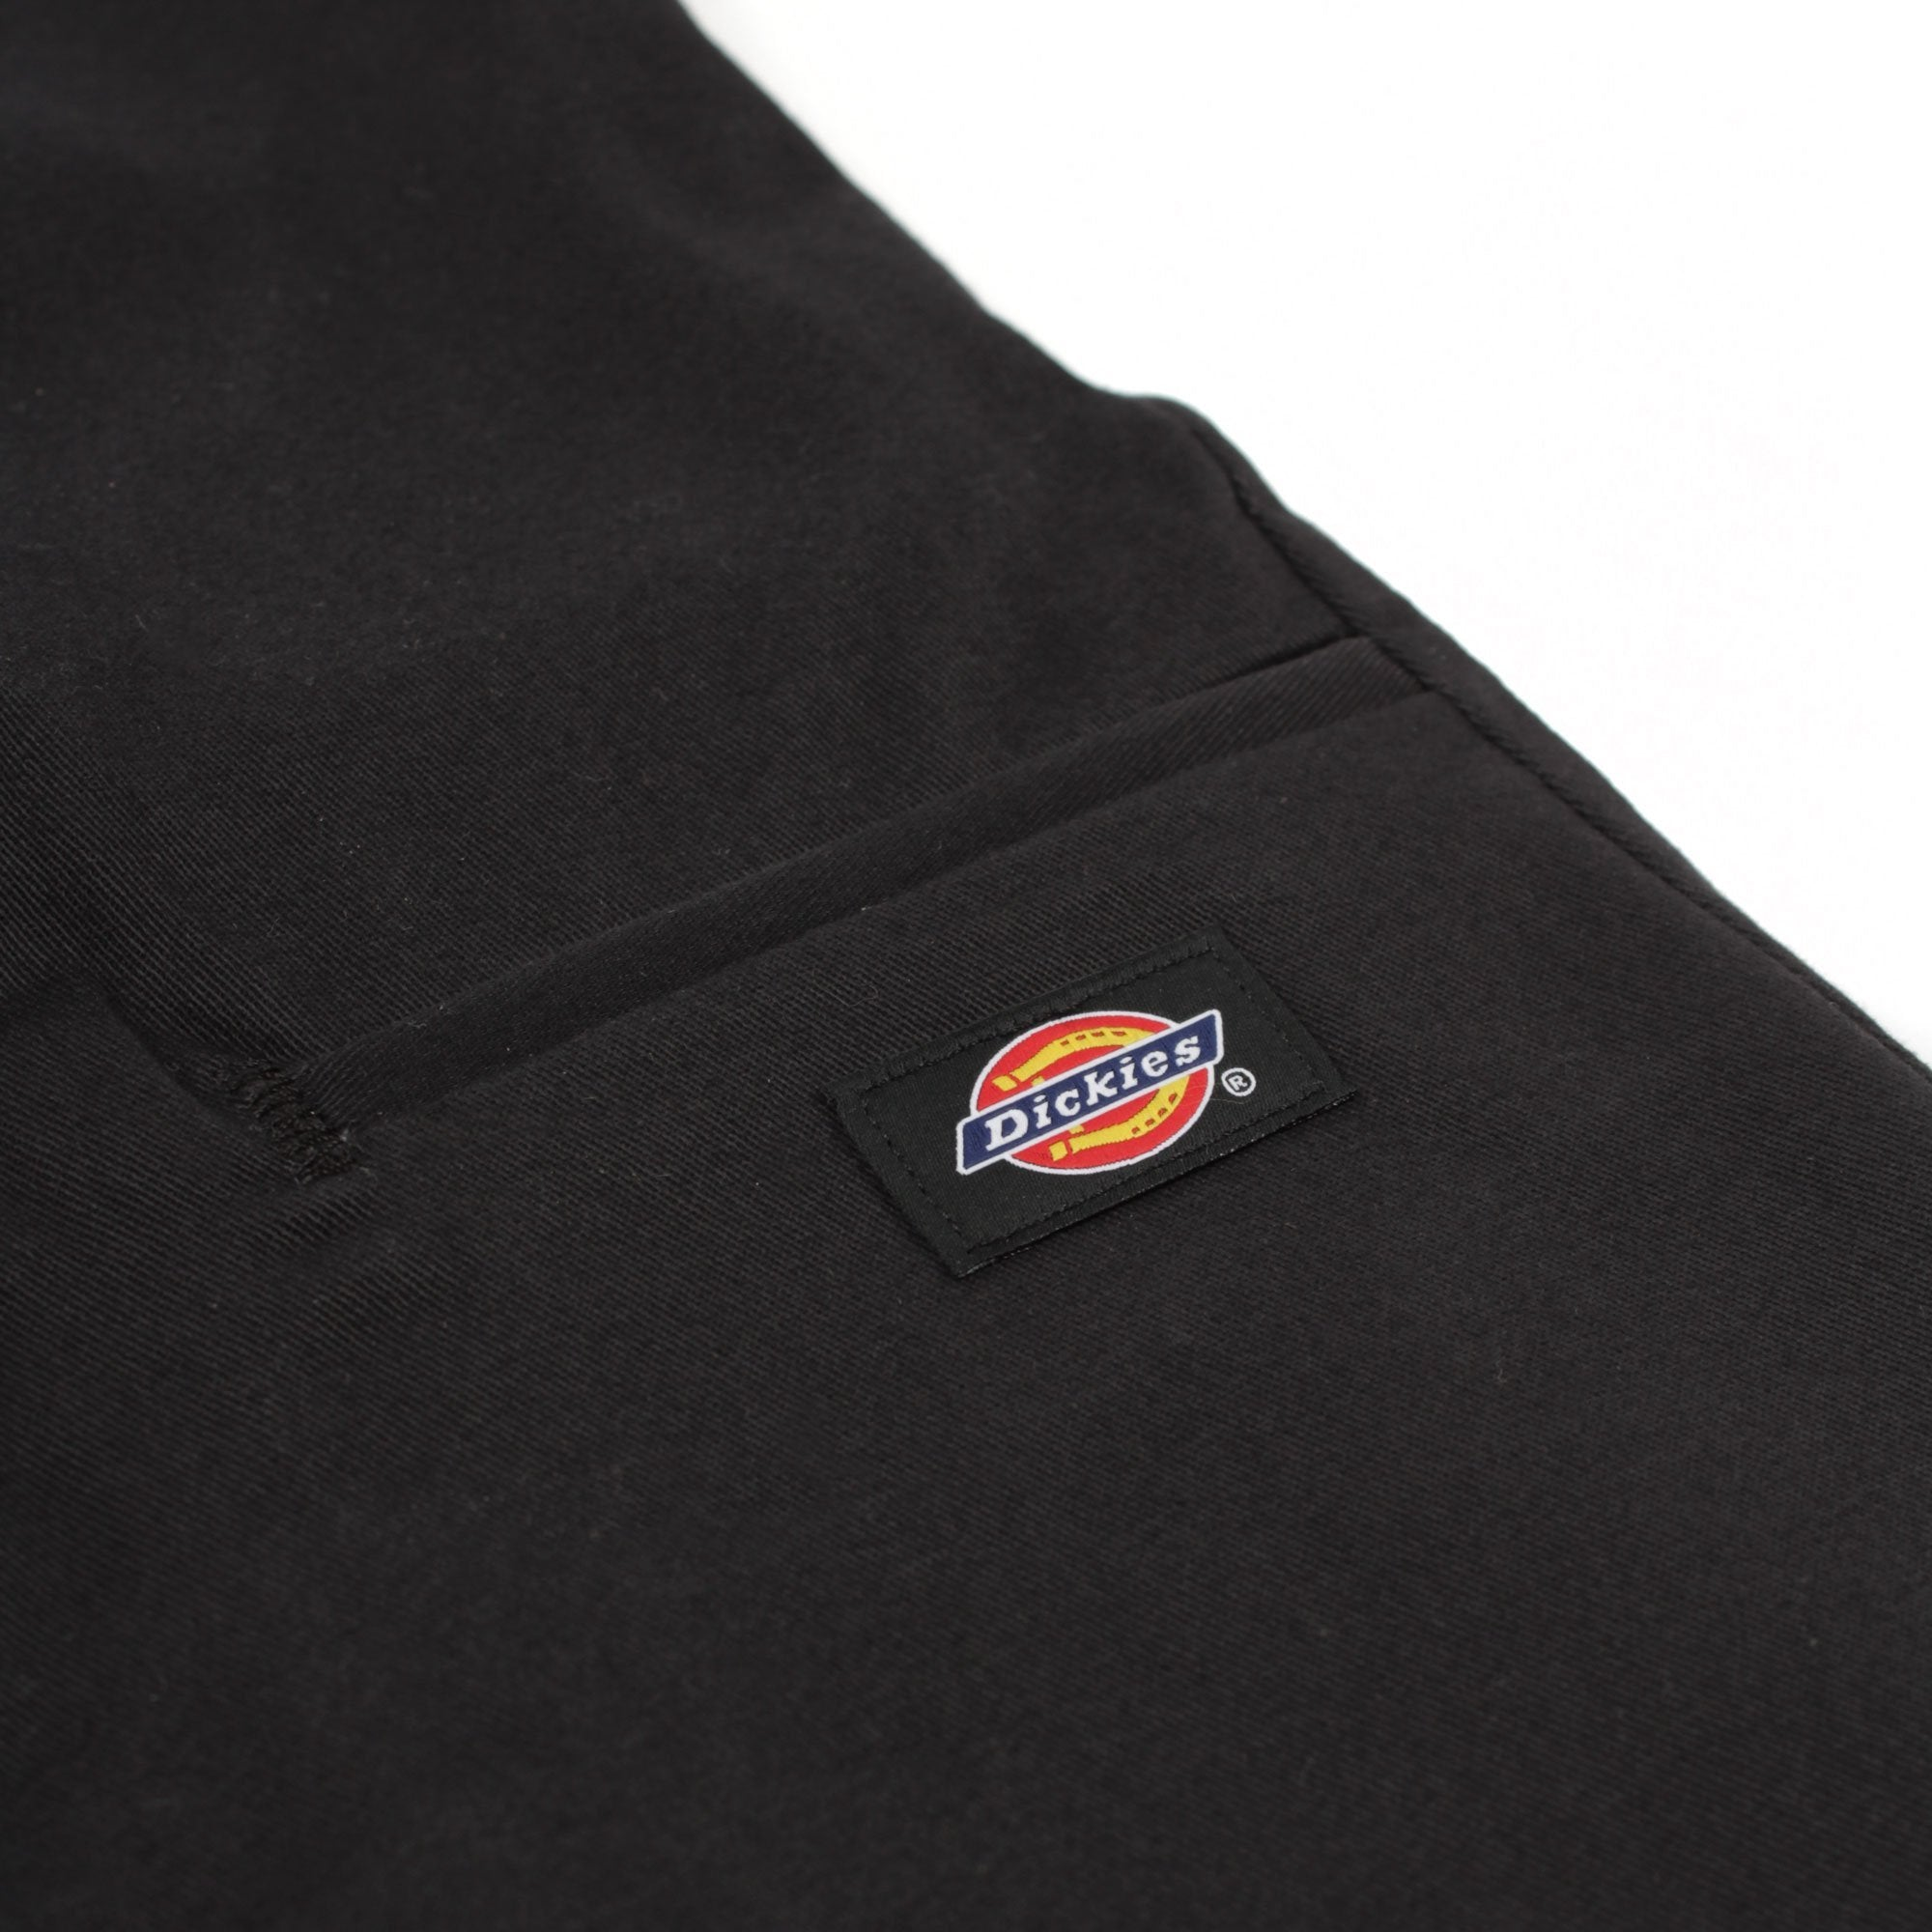 Dickies 801 Pants Product Photo #2